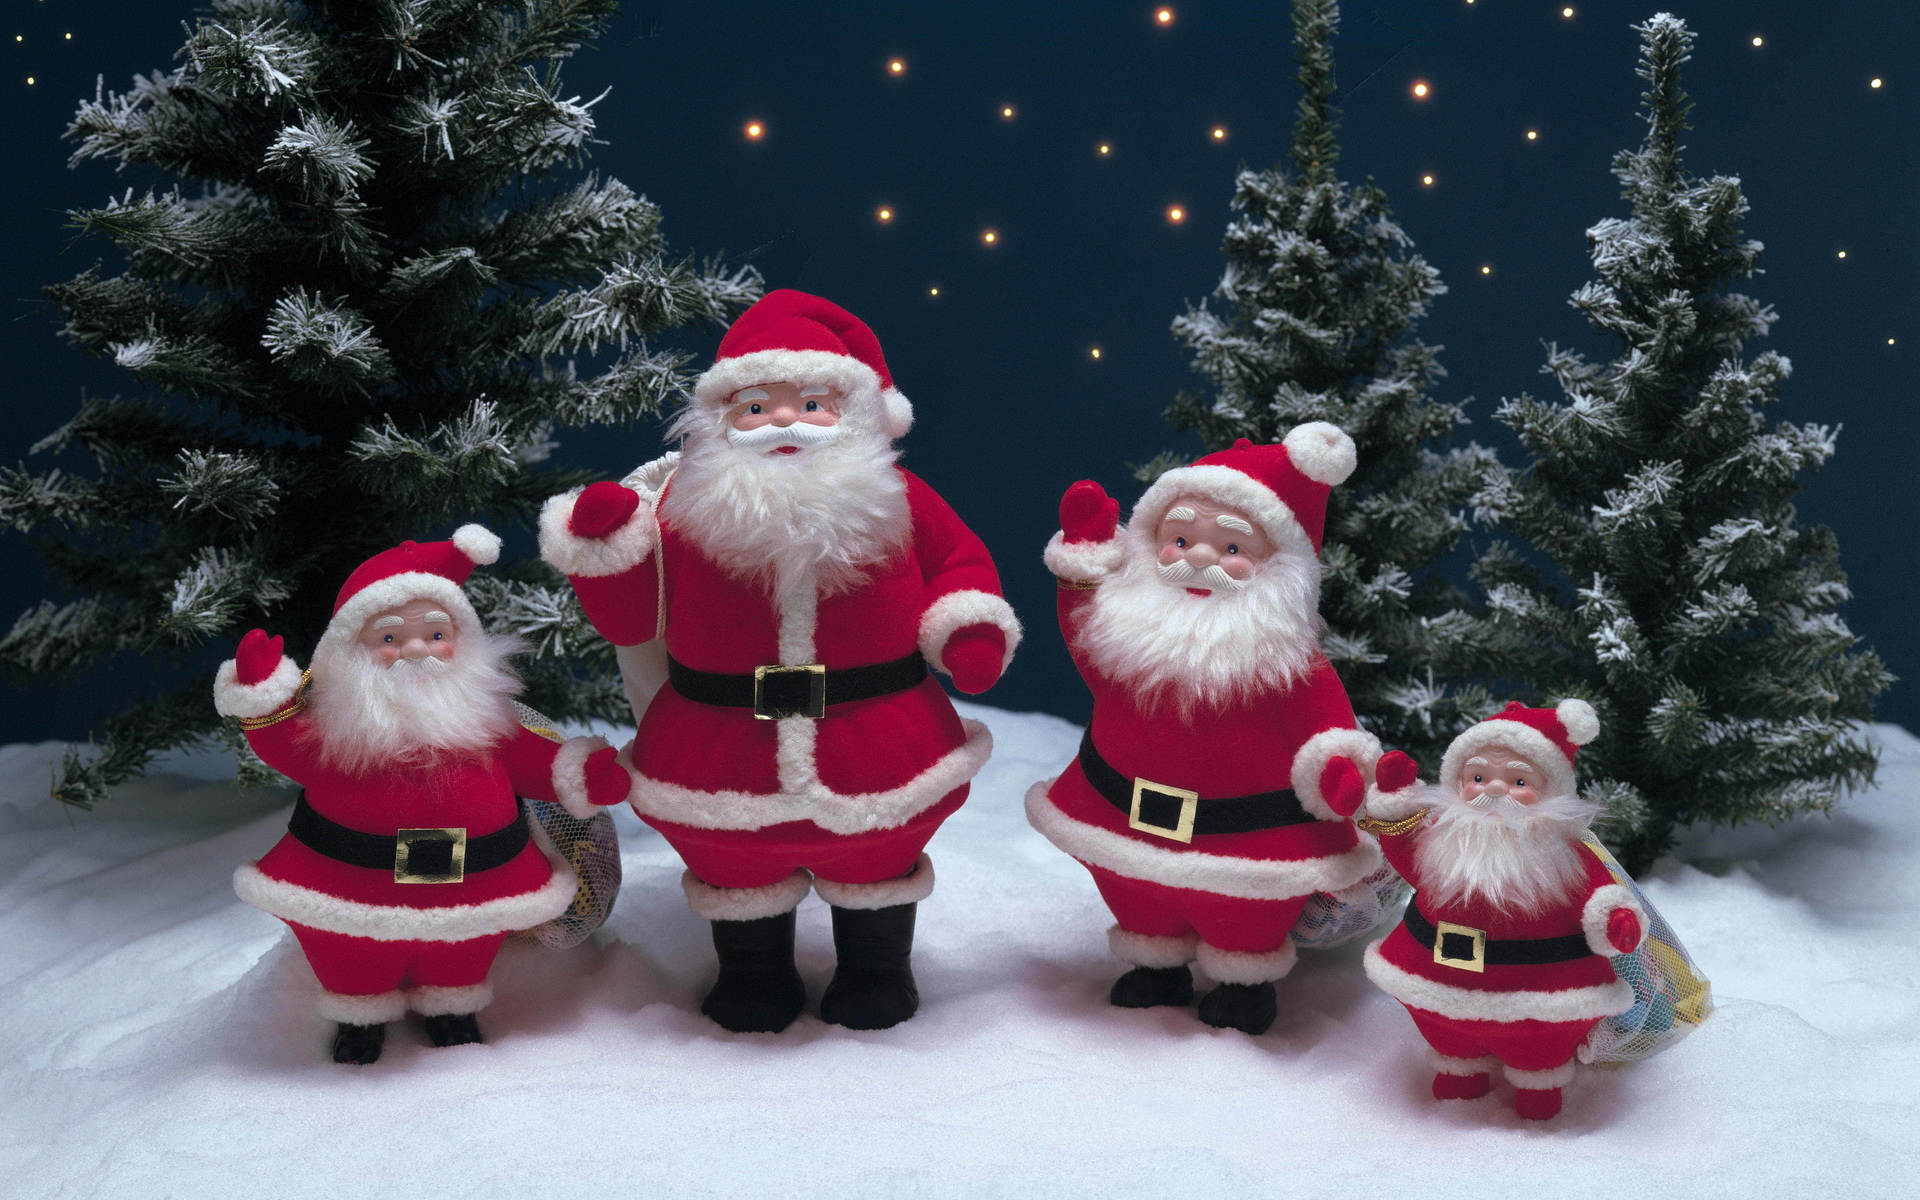 christmas decorations snow tree santa claus wallpaper 1920x1200 79368 wallpaperup - Santa Claus Christmas Decorations